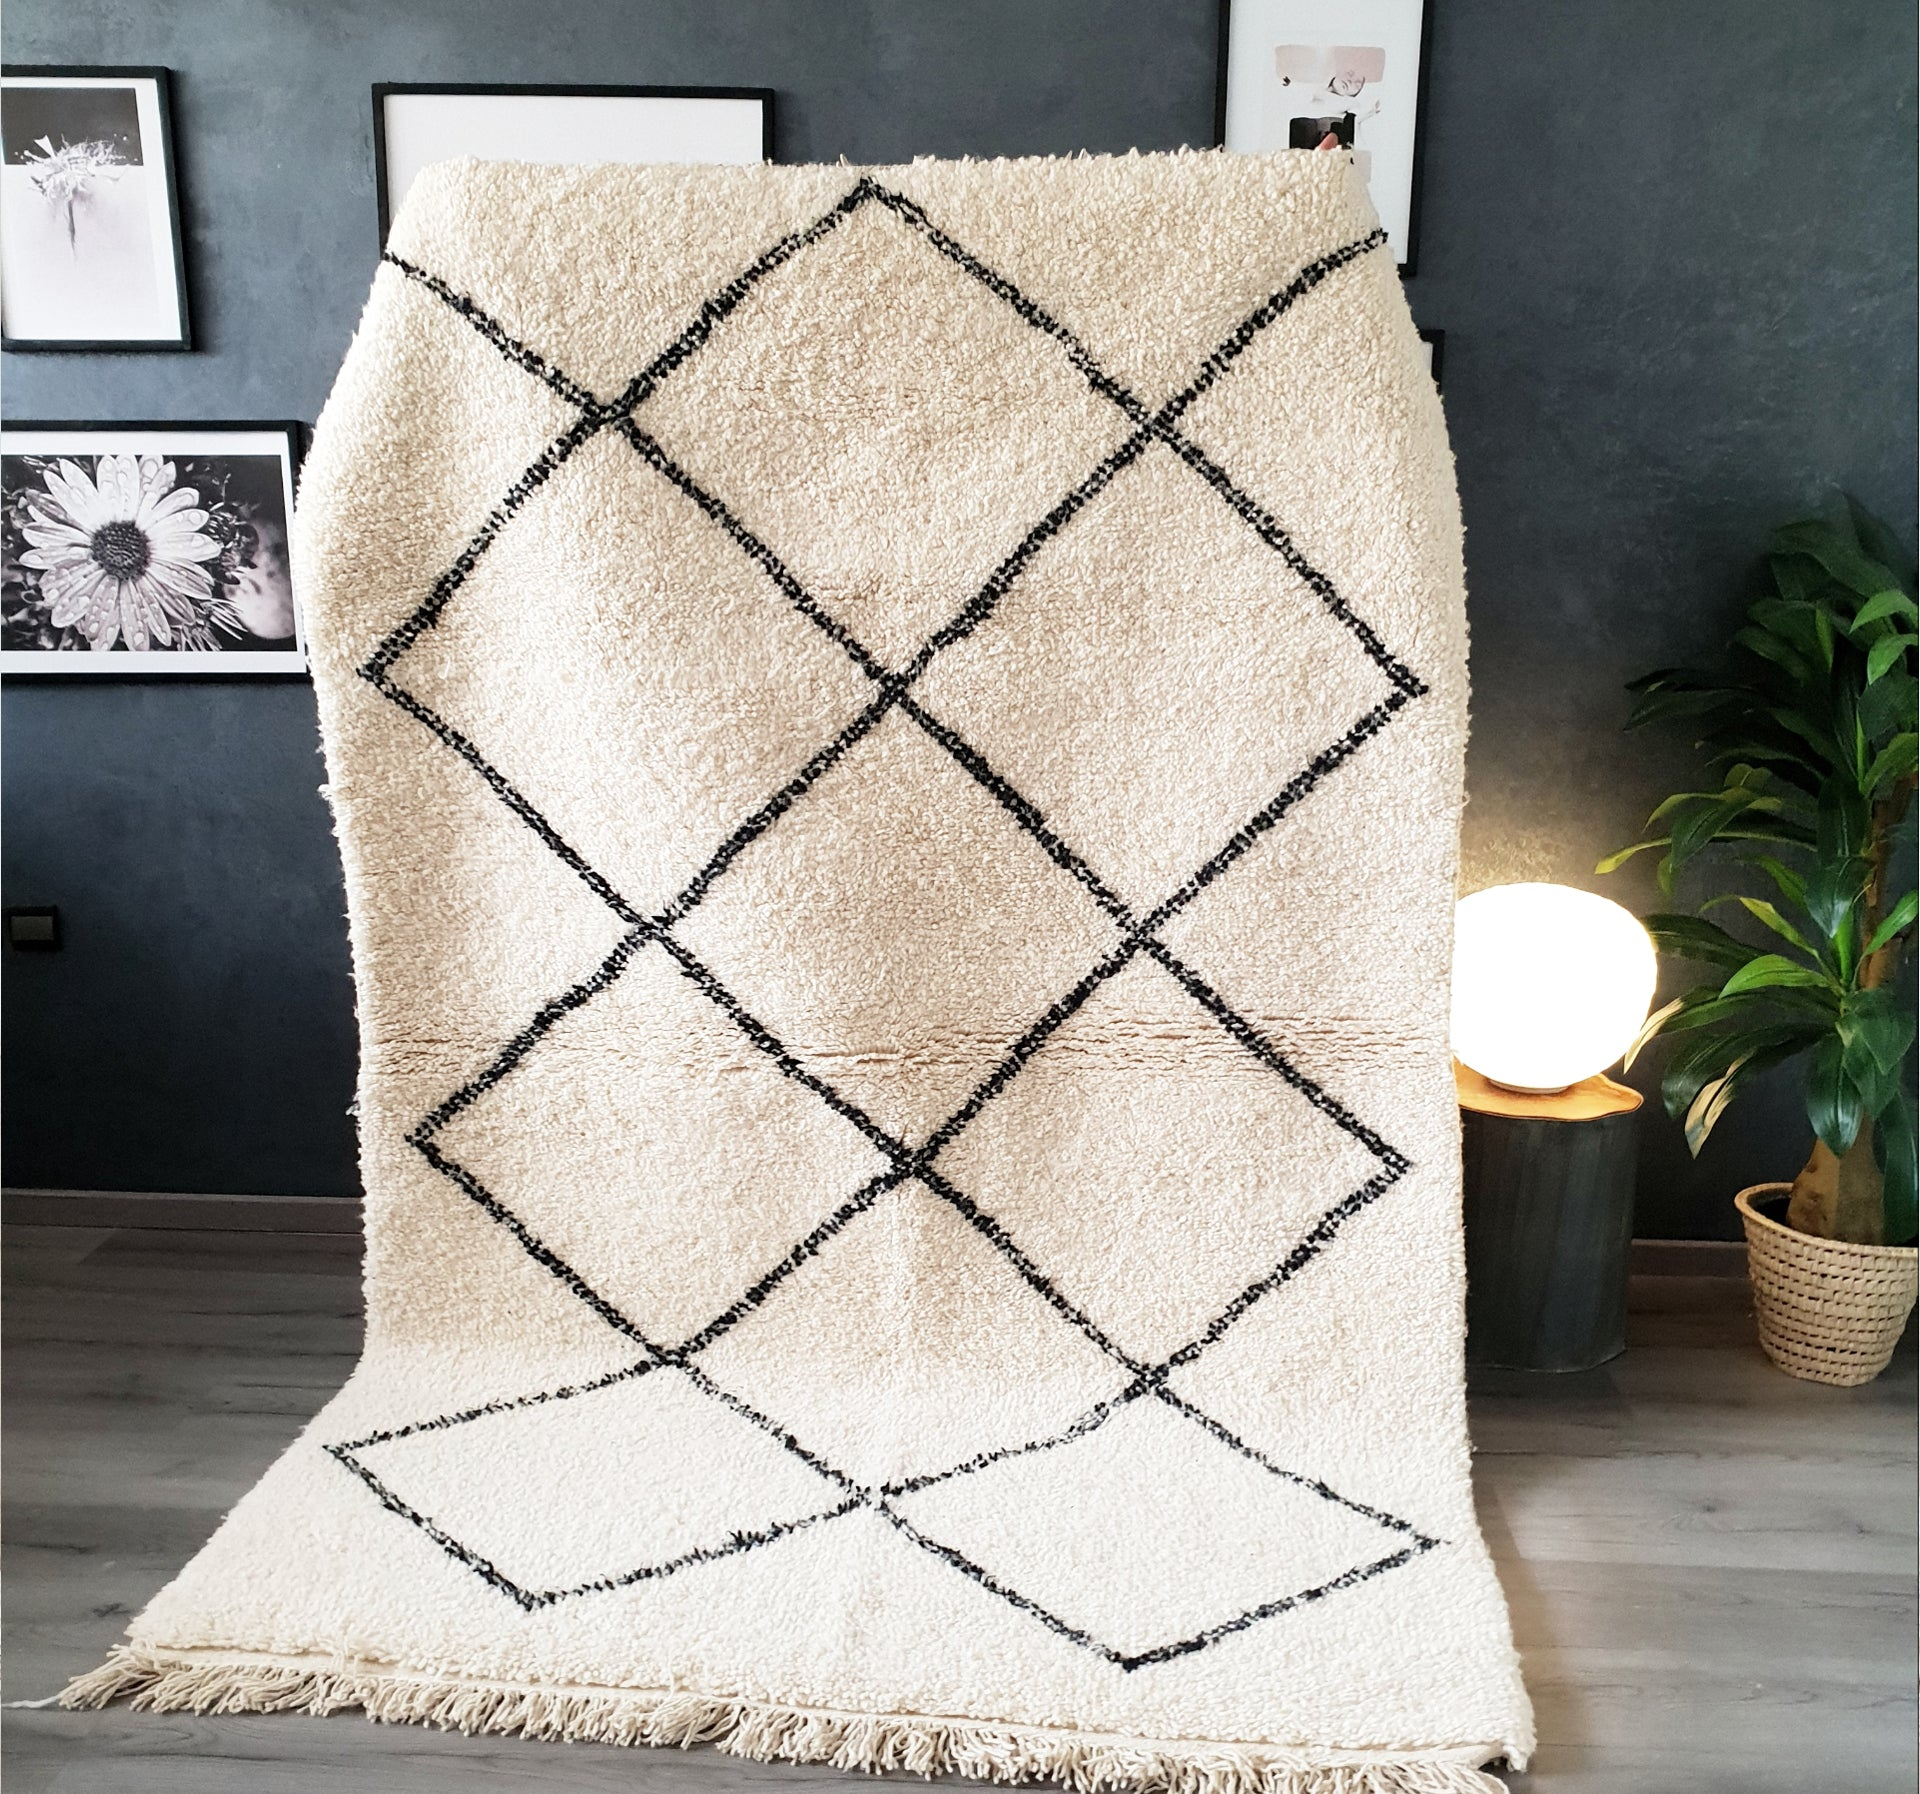 Hand knotted beni Ourain rug SOMAYA